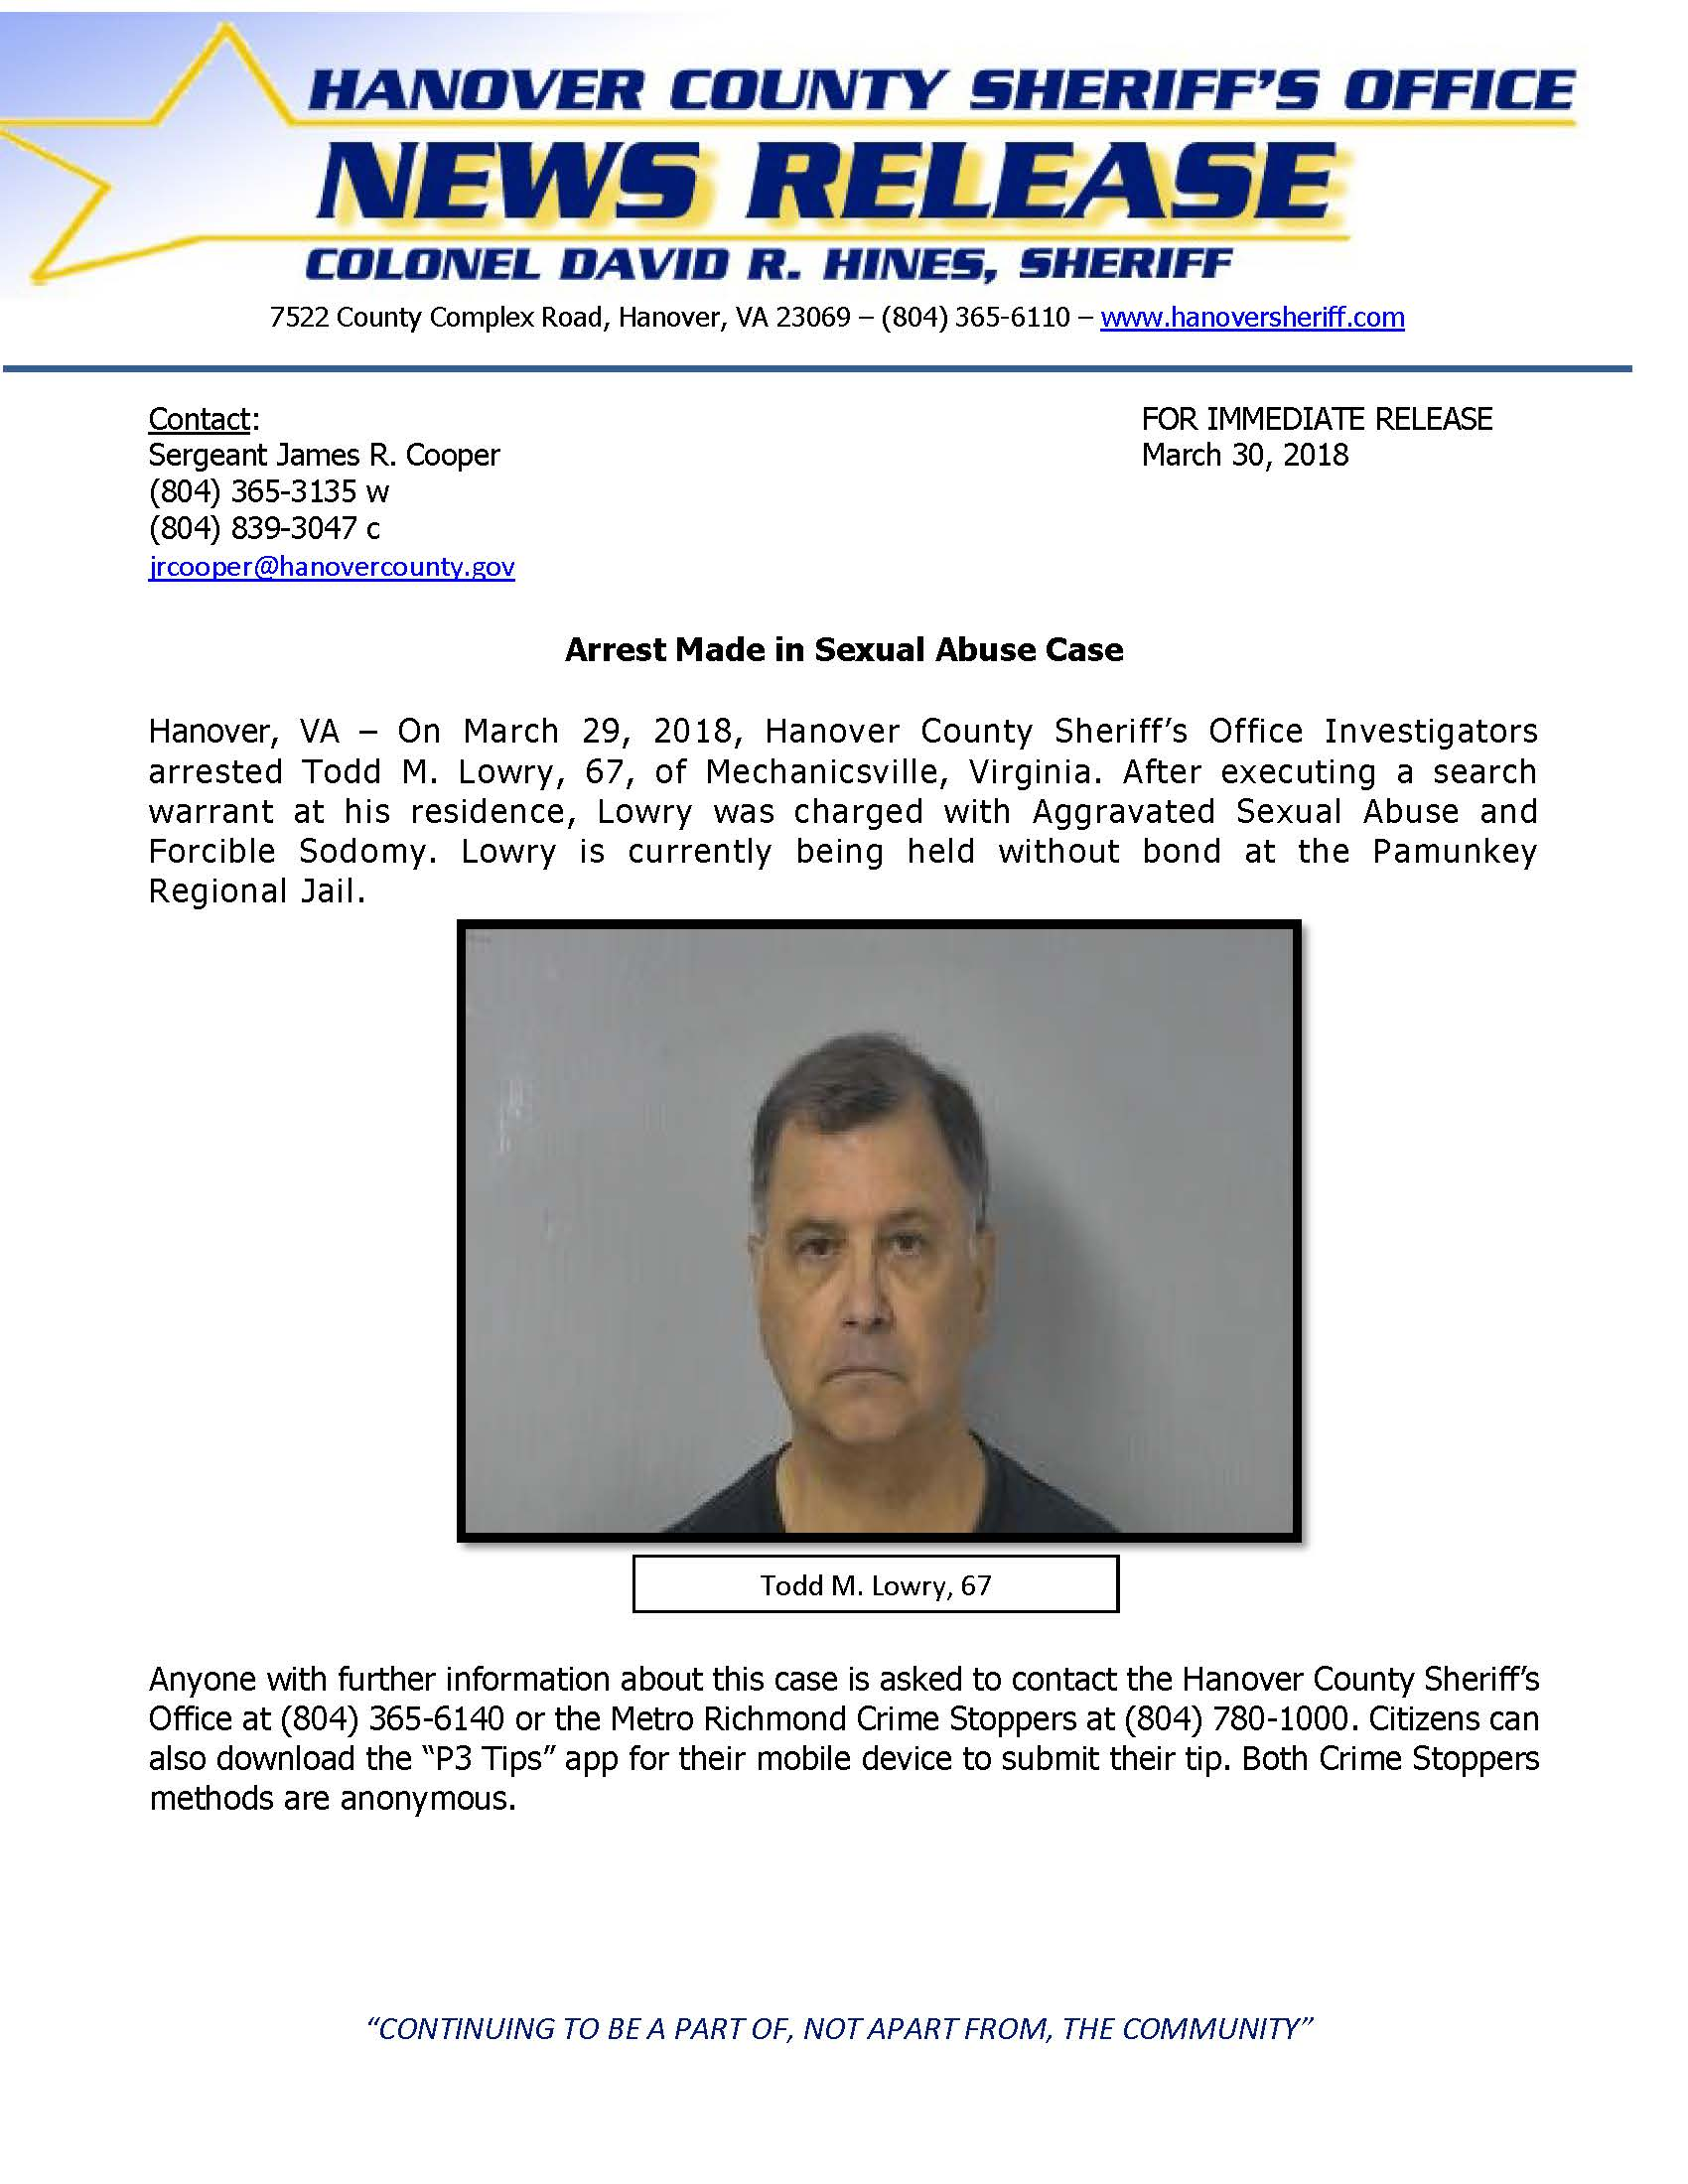 HCSO - Arrest Made in Sexual Abuse Case - March 30 2018